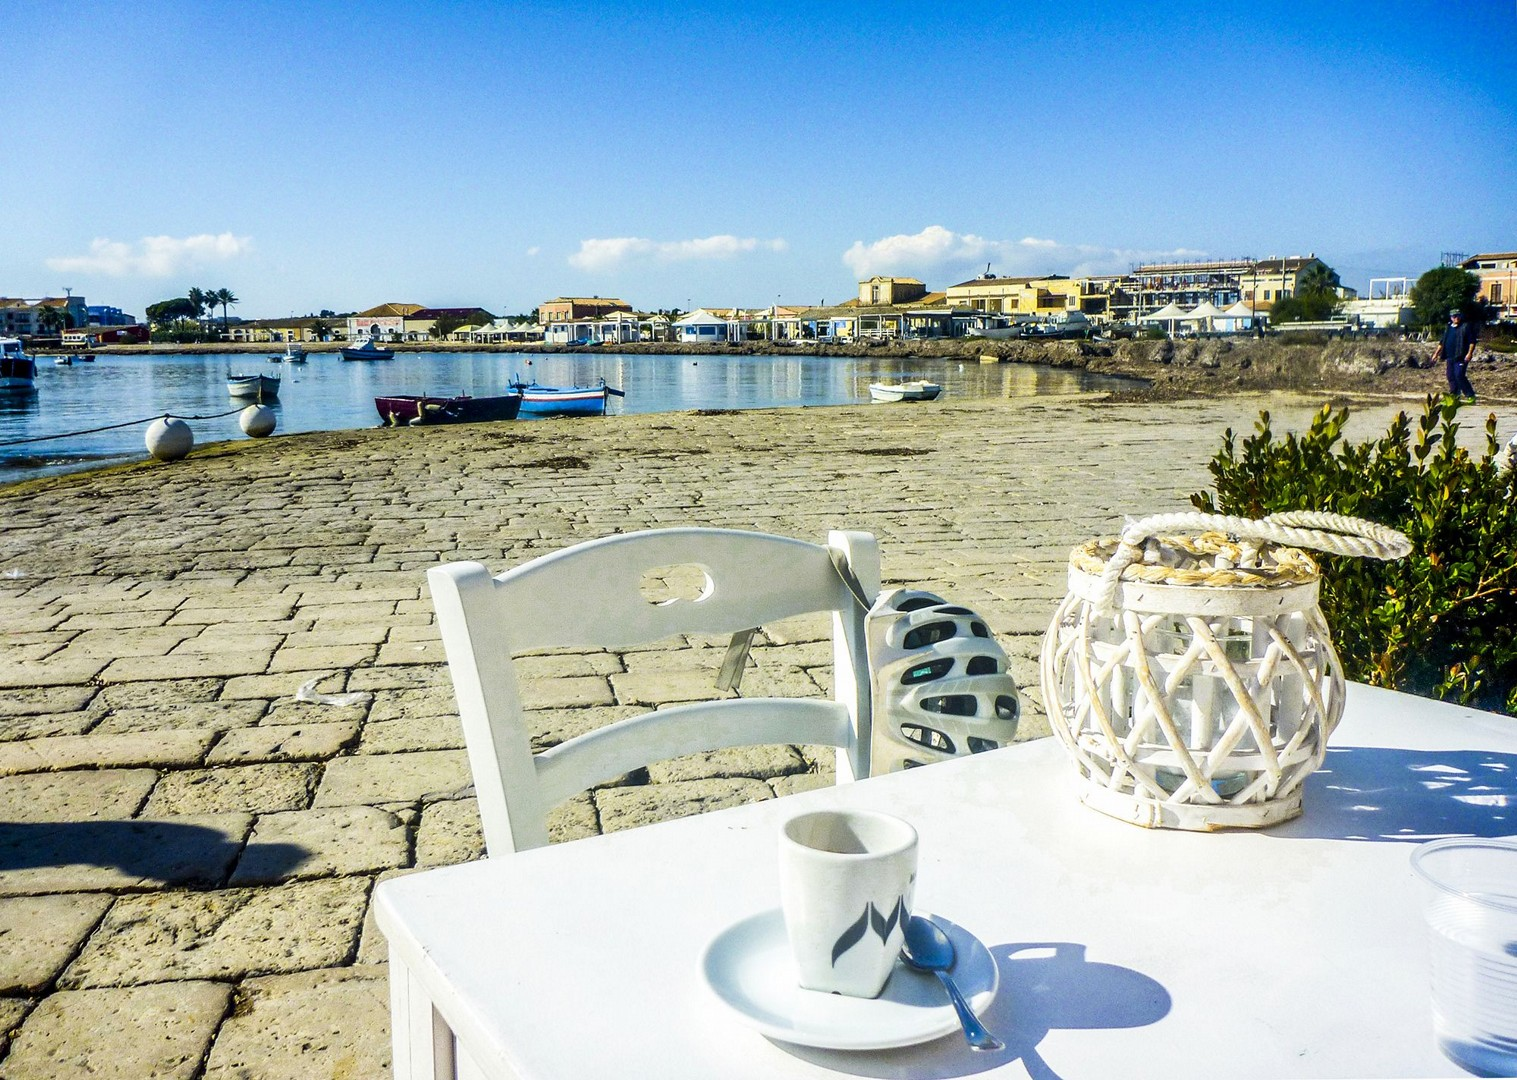 local-delicacy-quality-food-on-holiday-tour-biking-sicily.jpg - Italy - Sicily - Self-Guided Leisure Cycling Holiday - Italia Leisure and Family Cycling